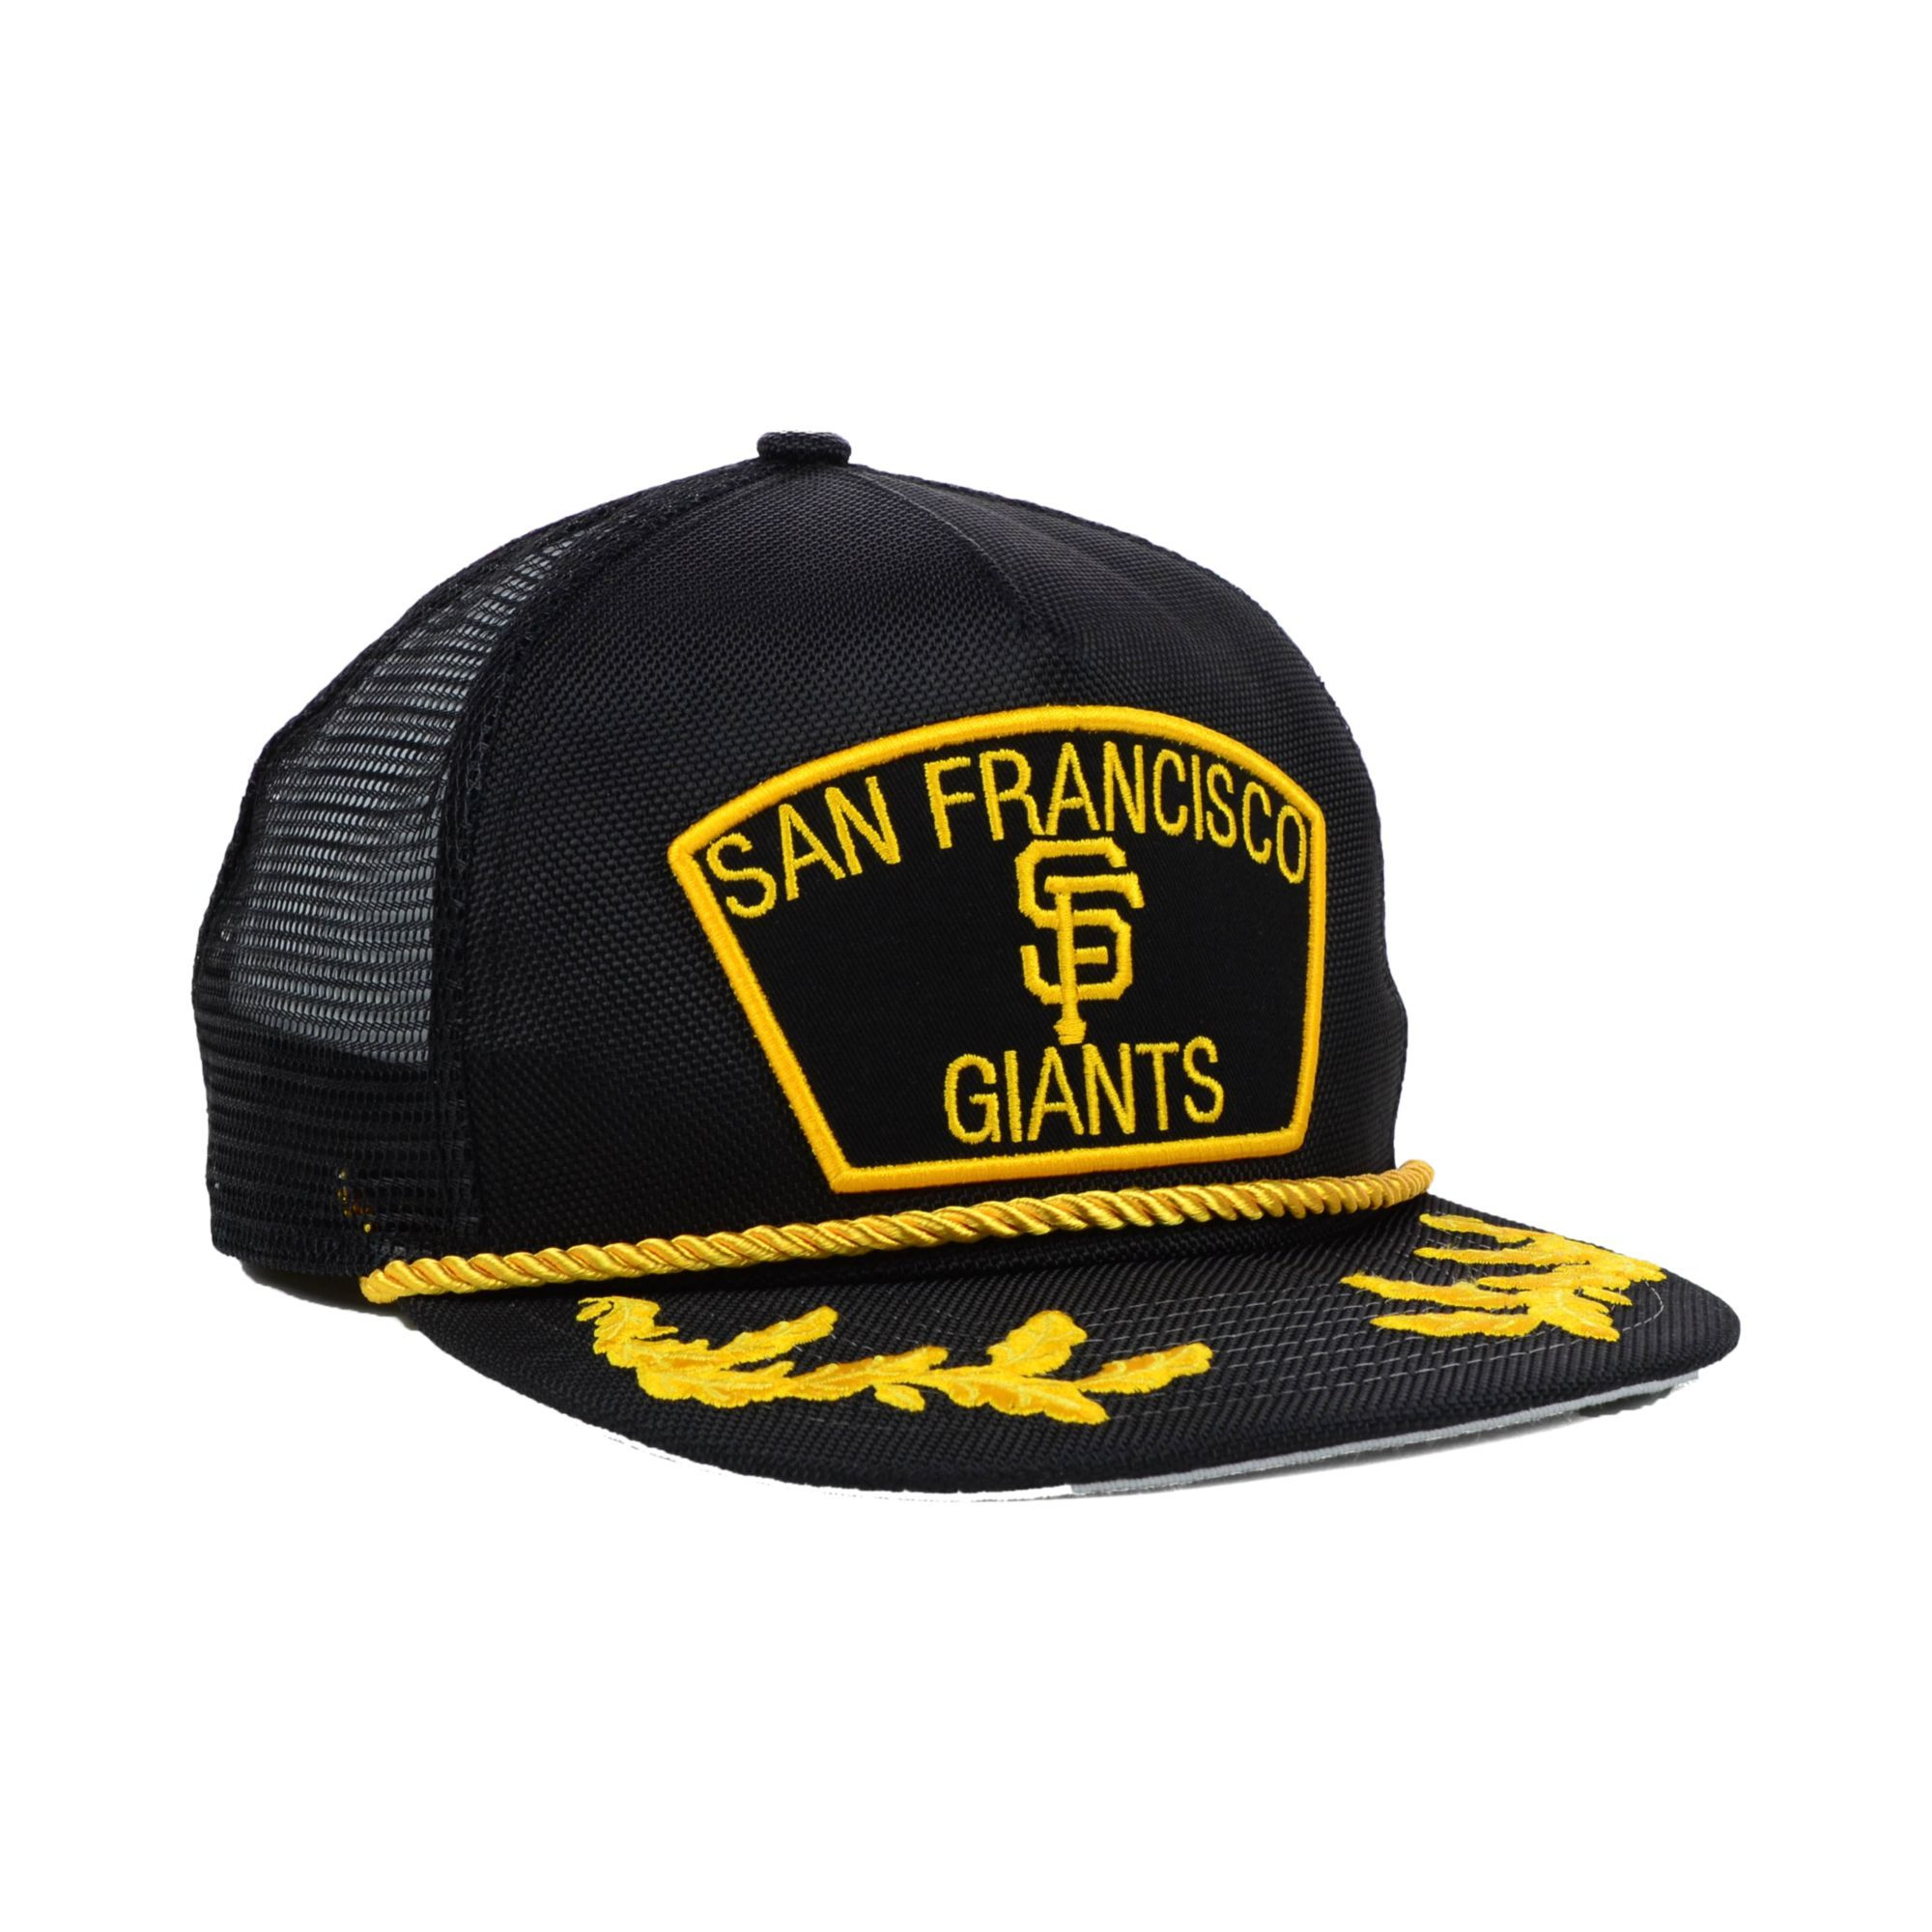 03f53b32746 Men s Black San Francisco Giants Mlb 9fifty Snapback Cap